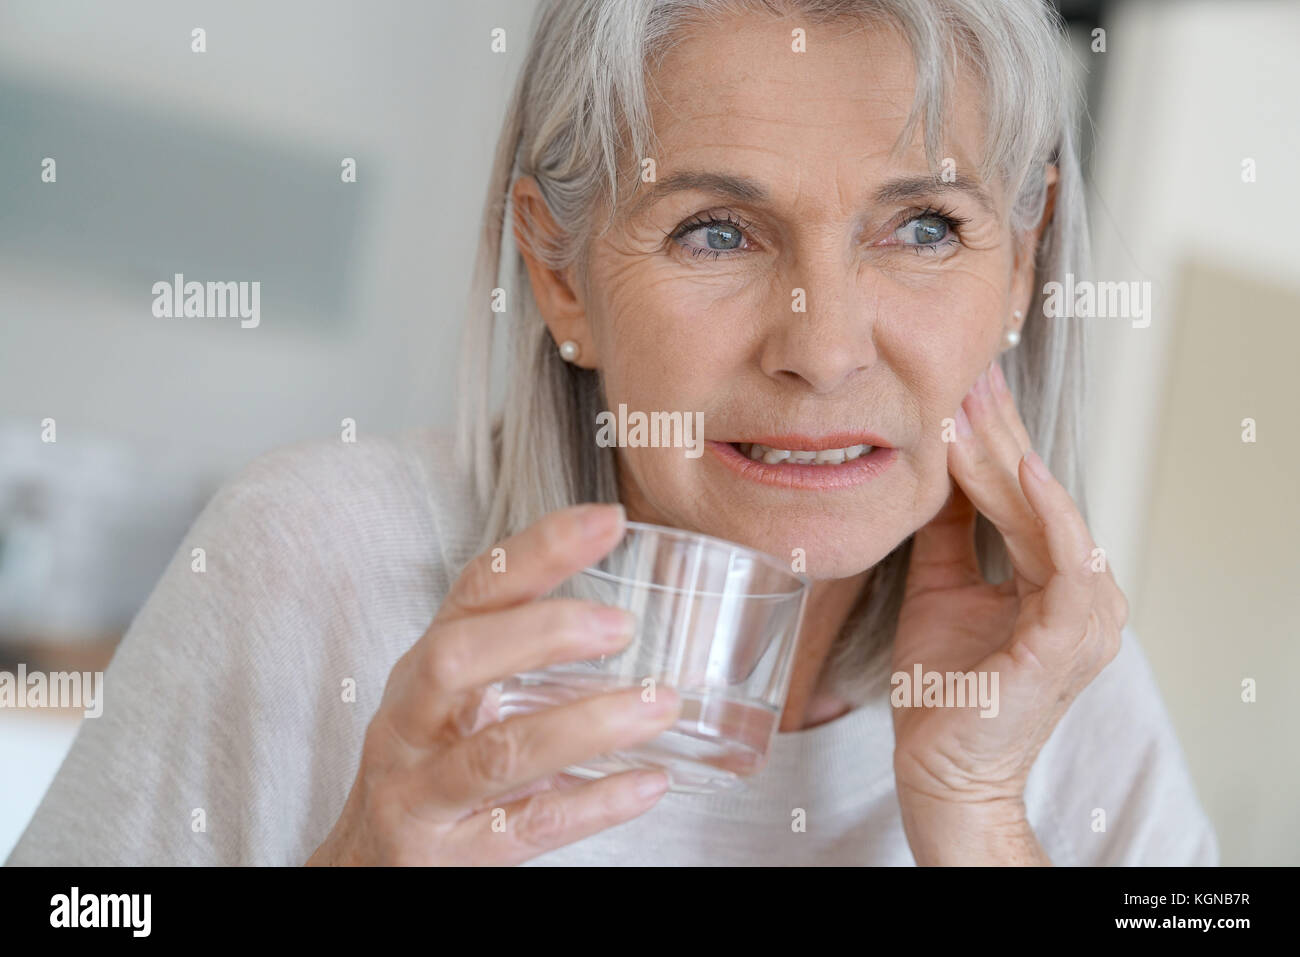 Senior woman with toothache - Stock Image